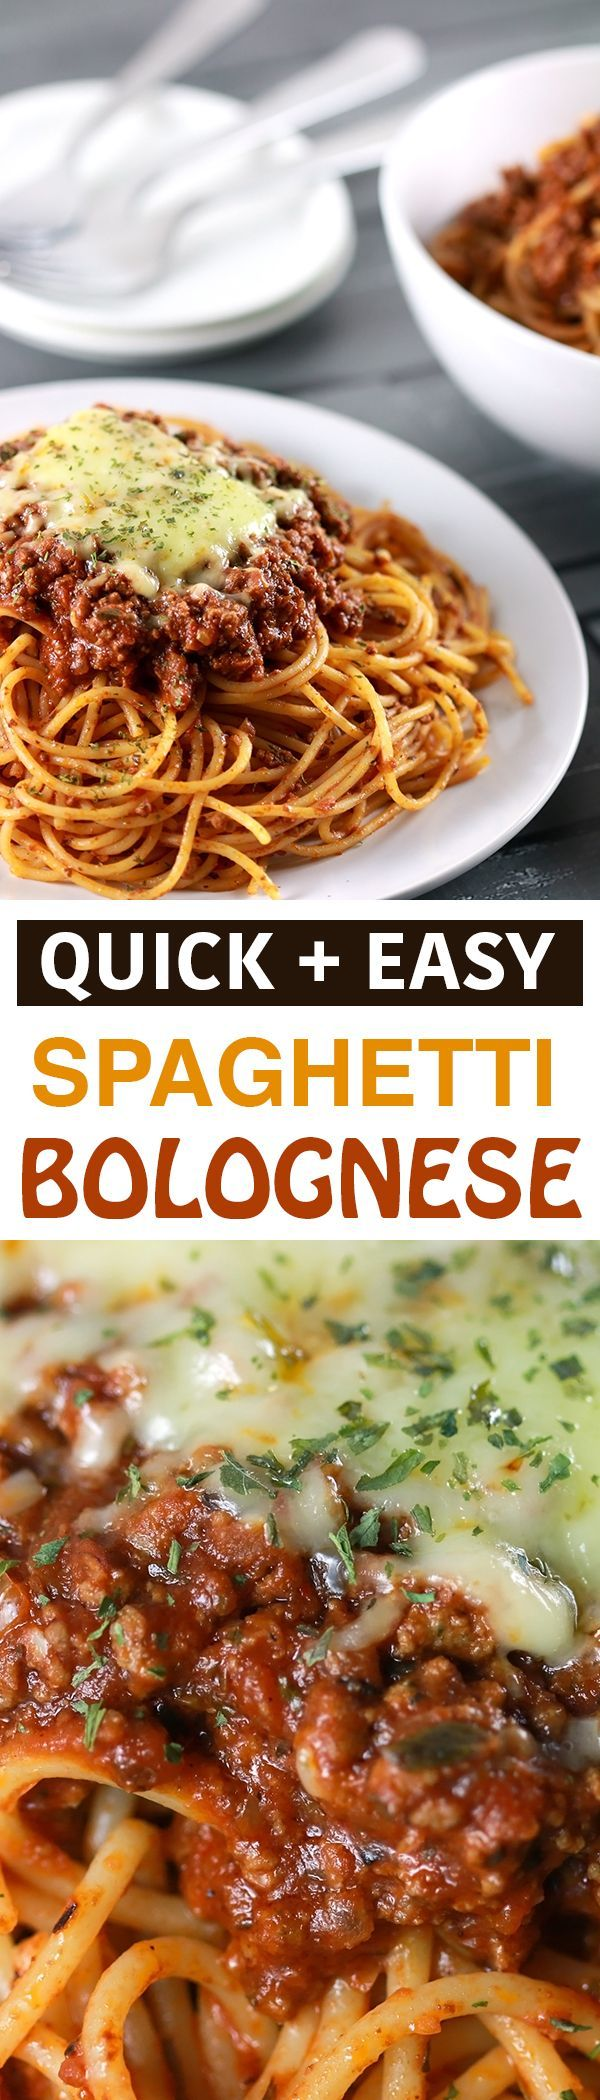 If there is one recipe for Spaghetti Bolognese that you need to know, this is it! You'll be amazed that this simple recipe can create such a tasty pasta!   http://ScrambledChefs.com